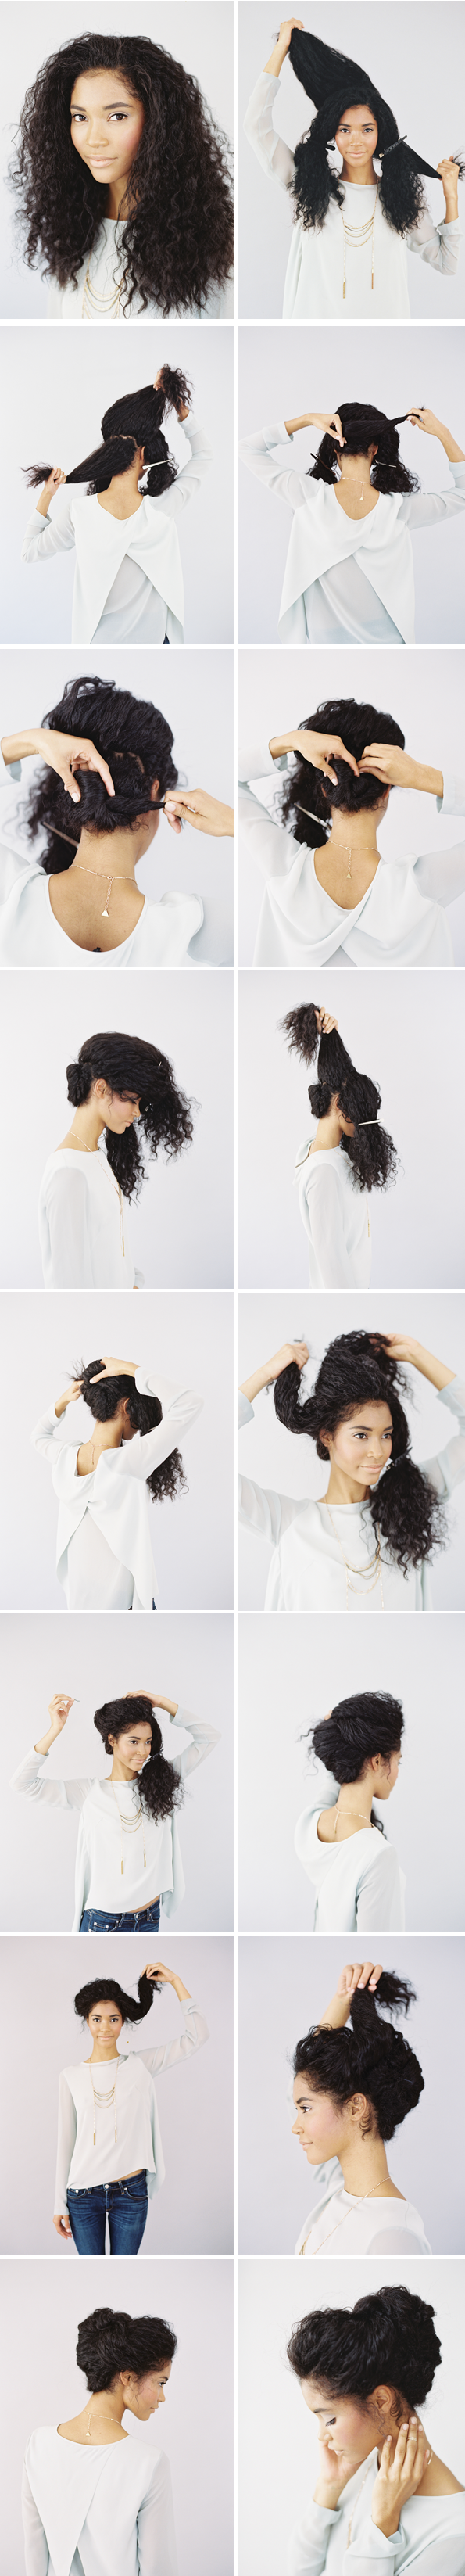 Simple updo for long curly hair